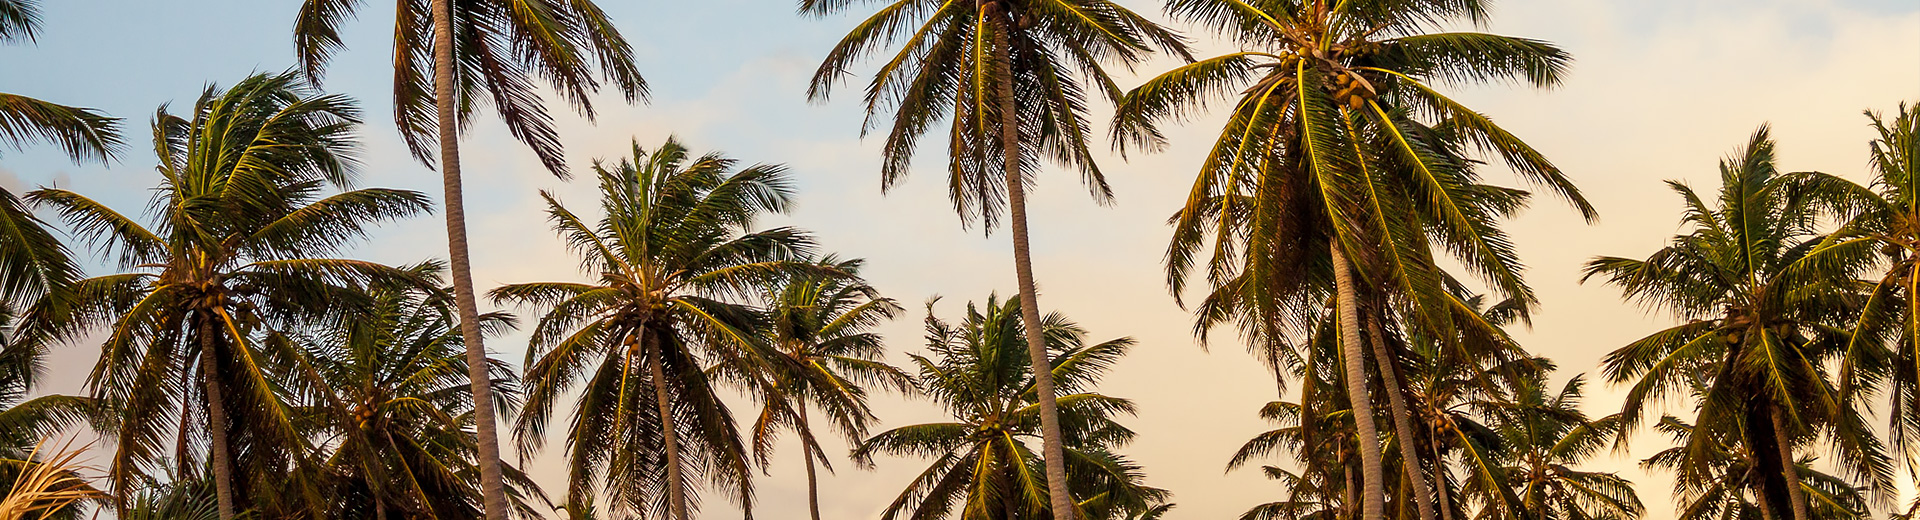 sunset palmtrees